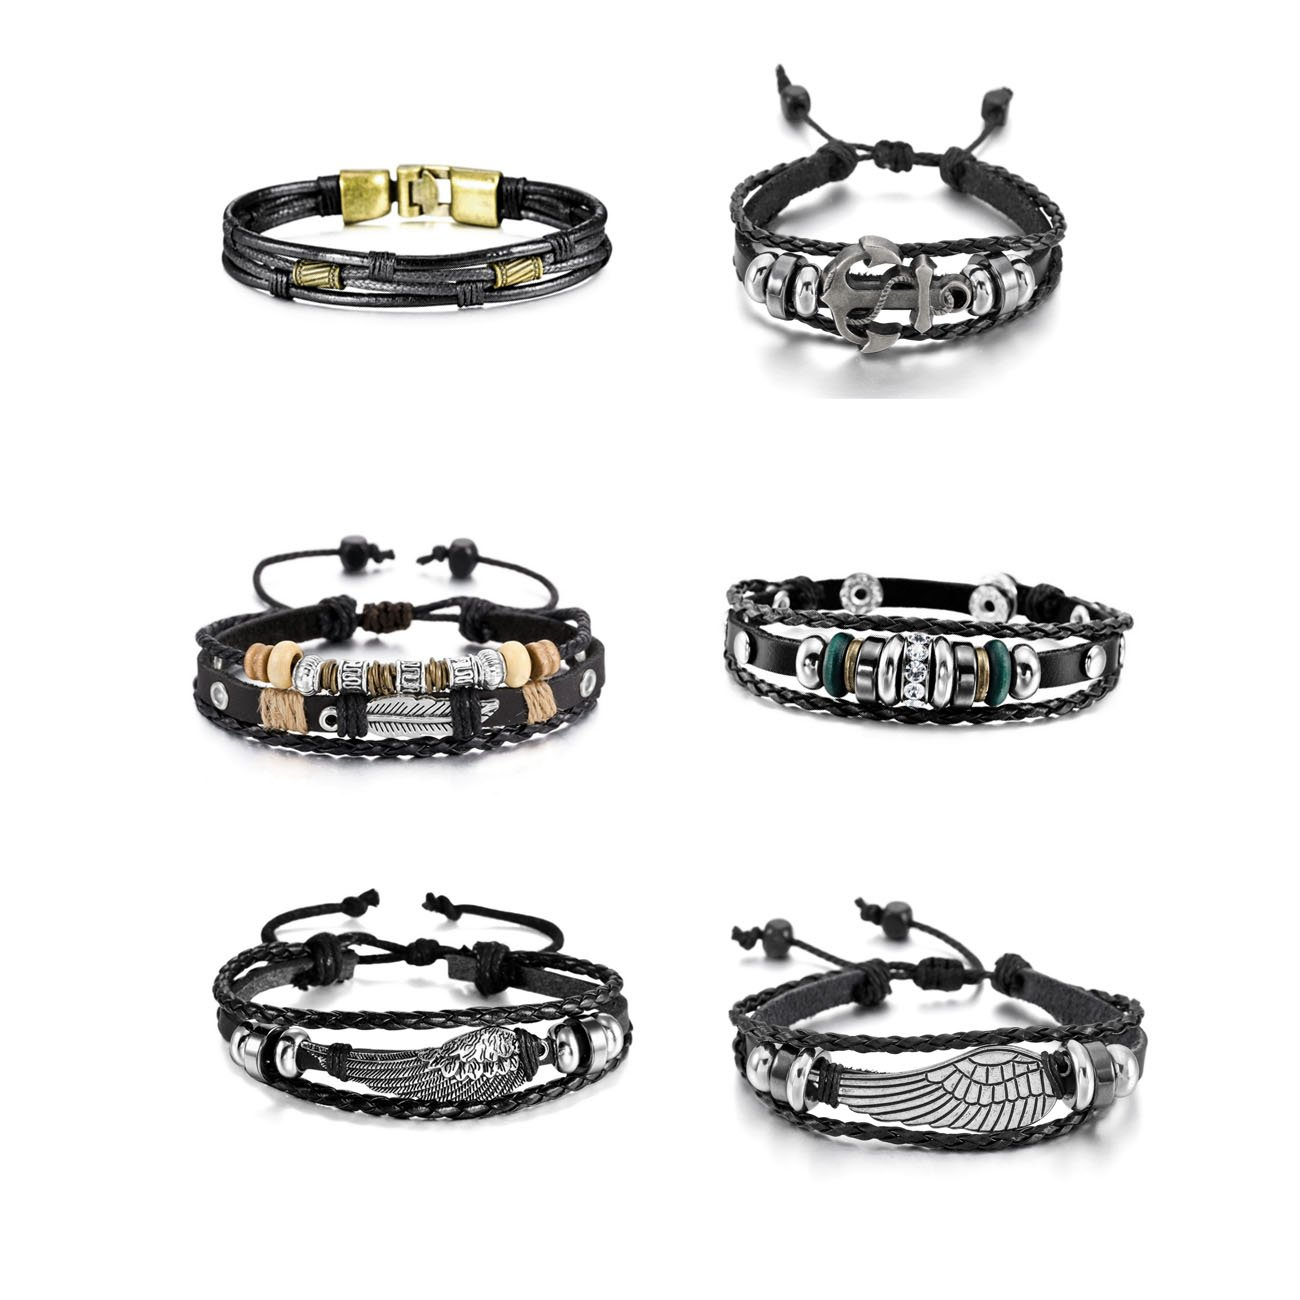 MOWOM 4~8PCS Black Brown Silver Tone Alloy Genuine Leather Bracelet Bangle Rope Braided ca5020326